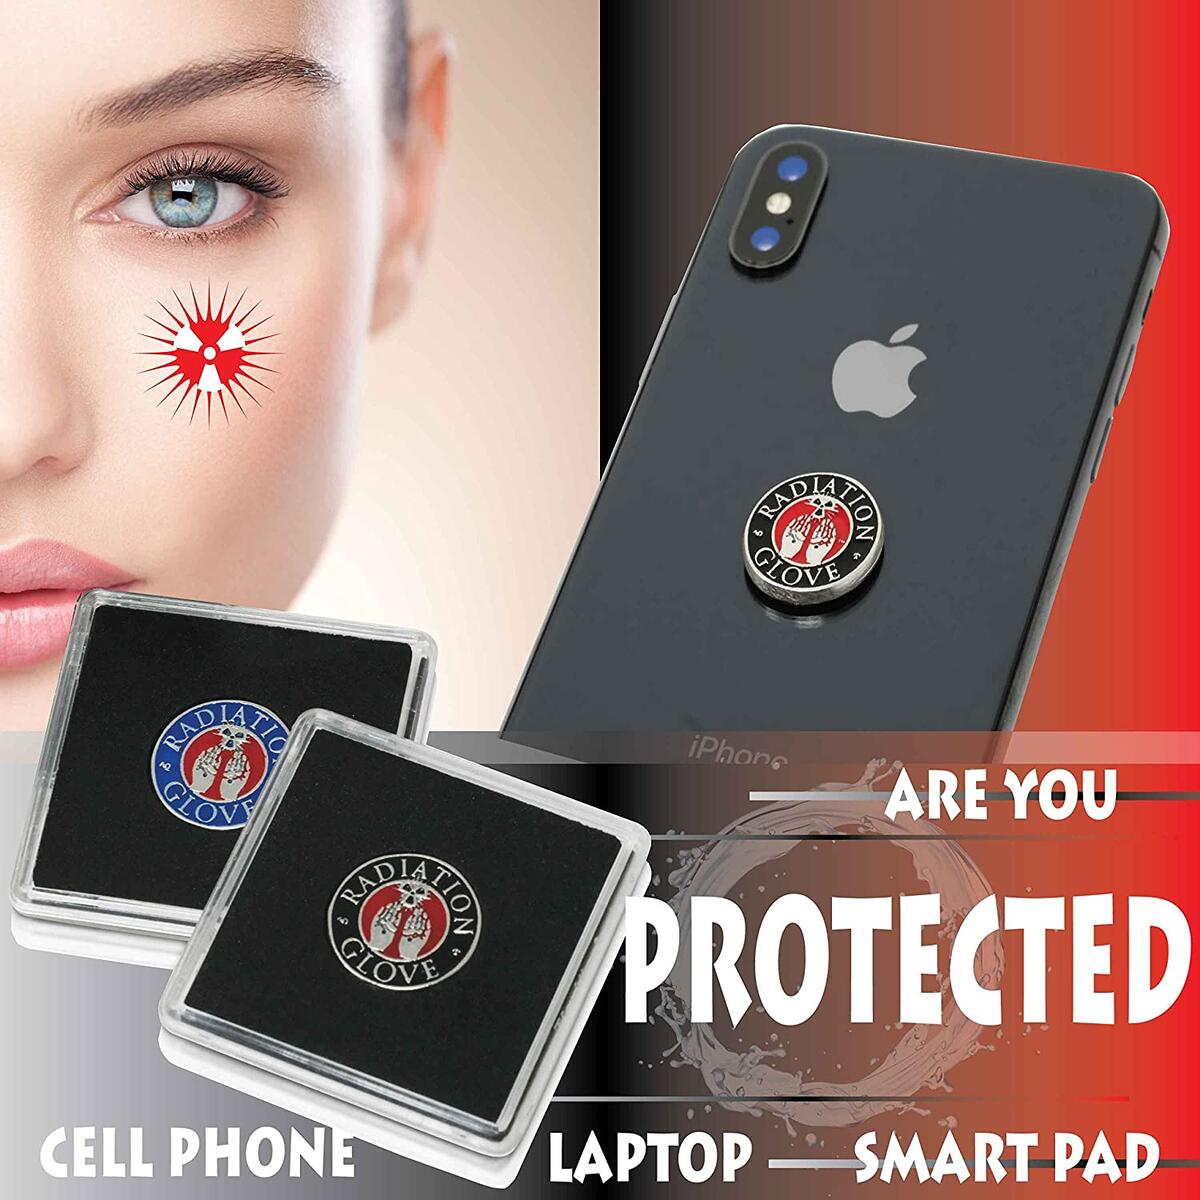 EMF Protection Cell Phone Radiation Protection Device – Radiation Protection for All Electronic Devices - Cell Phone, Laptop, Smartpad - EMF Defender Protection Products EMF Shield for Phone or Case…